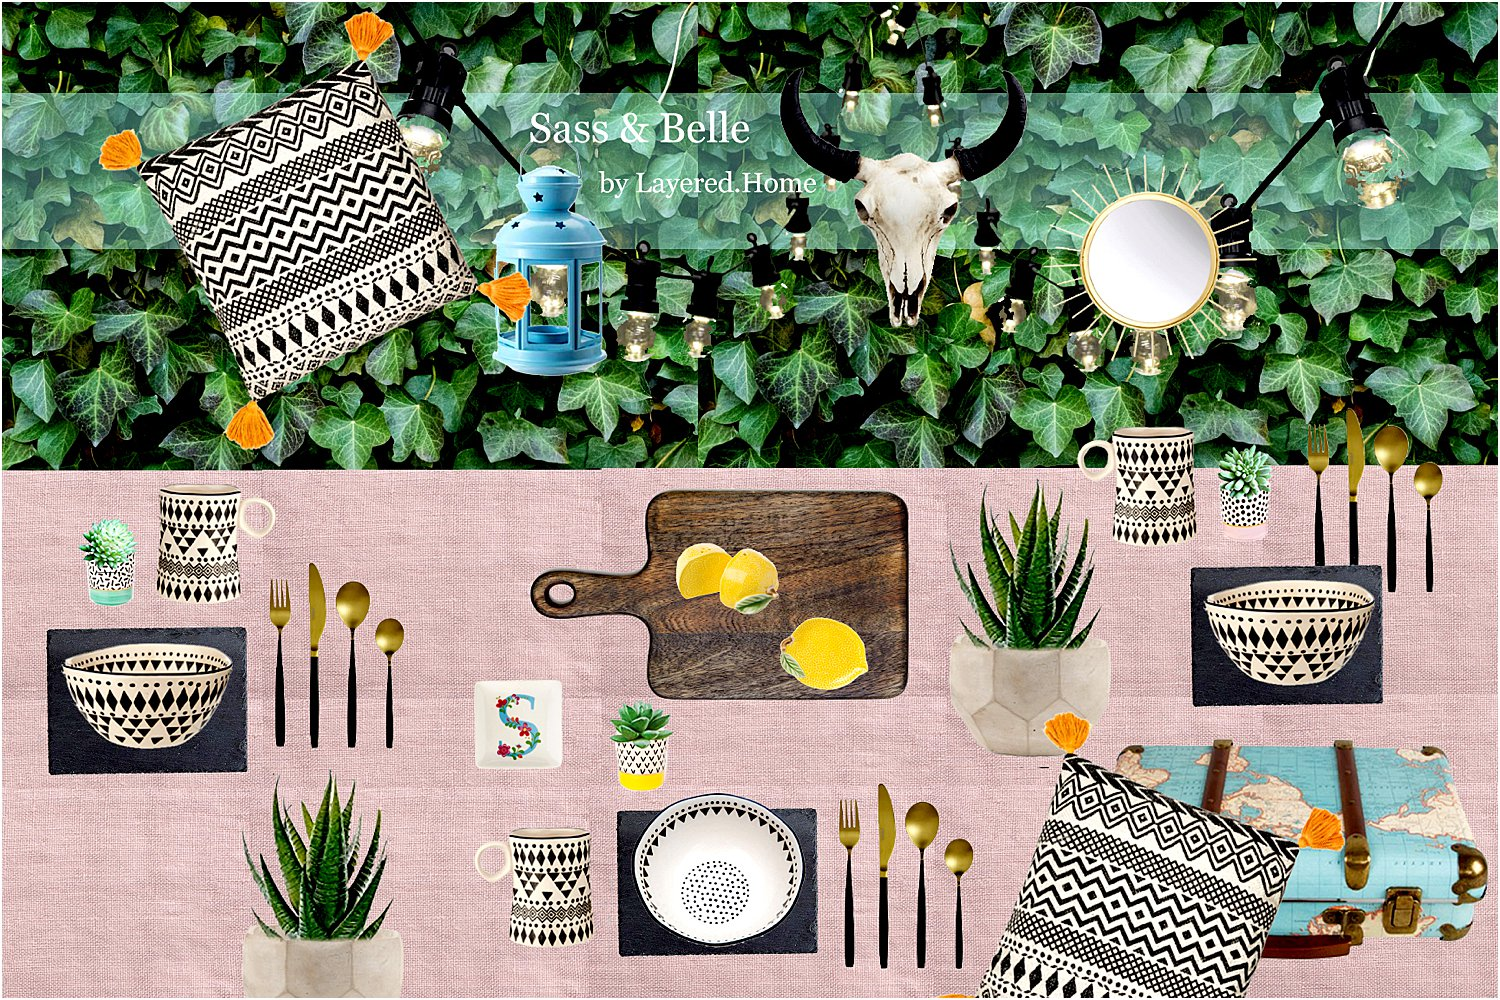 outdoor-garden-indoor-table-styling-sass-and-belle-layered-home-eclectic-interiors-moodboard-lily-sawyer-photo